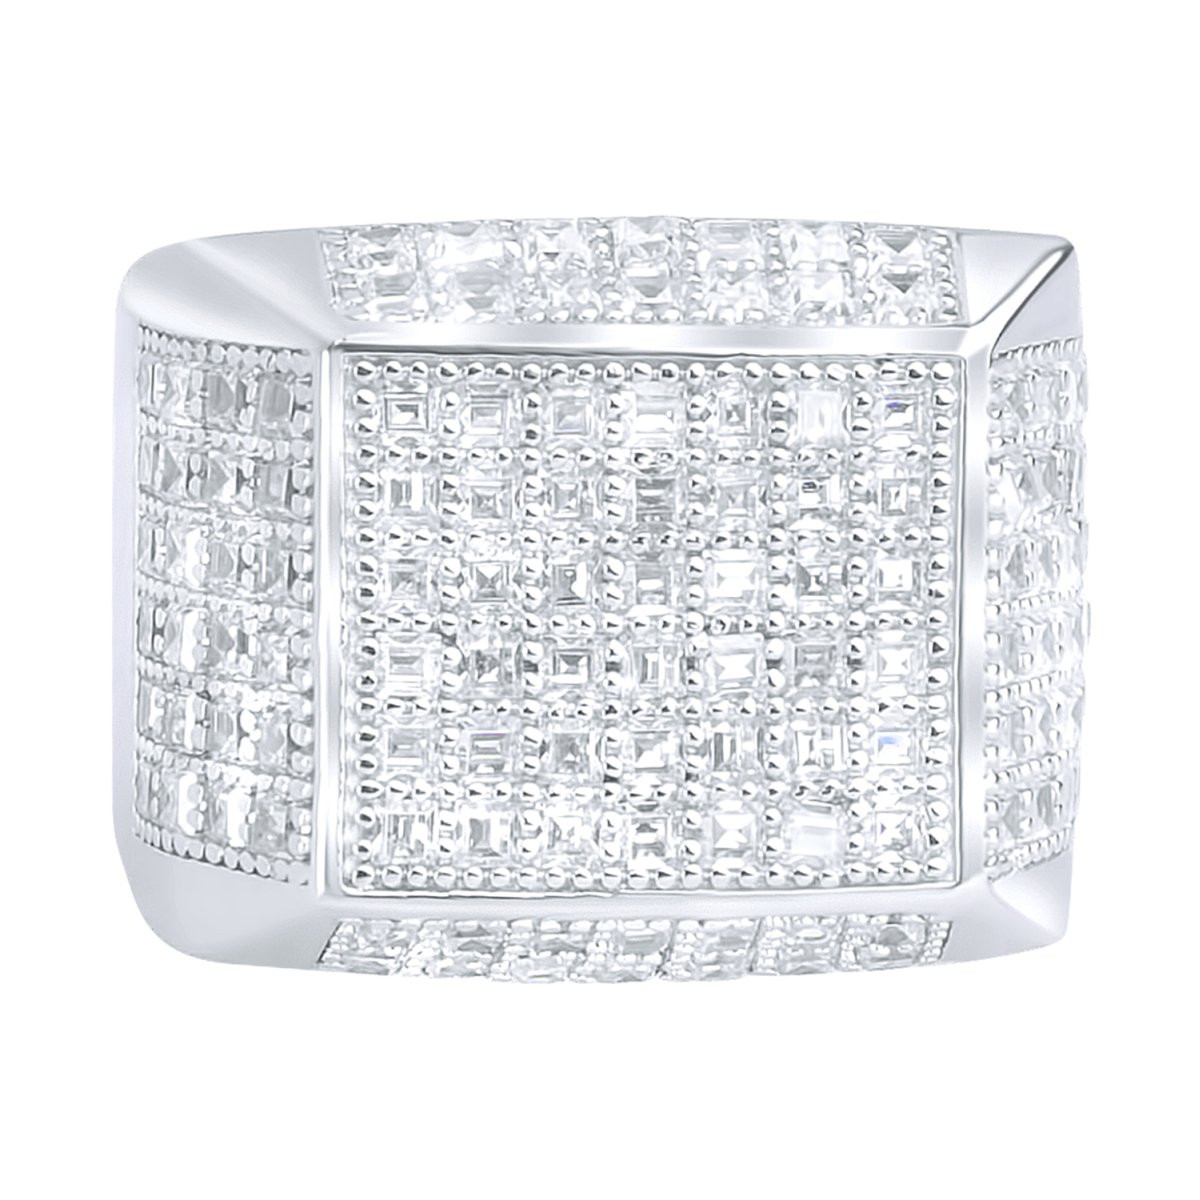 Iced Out Sterling 925 Silver Pave Ring - ARTS - 10